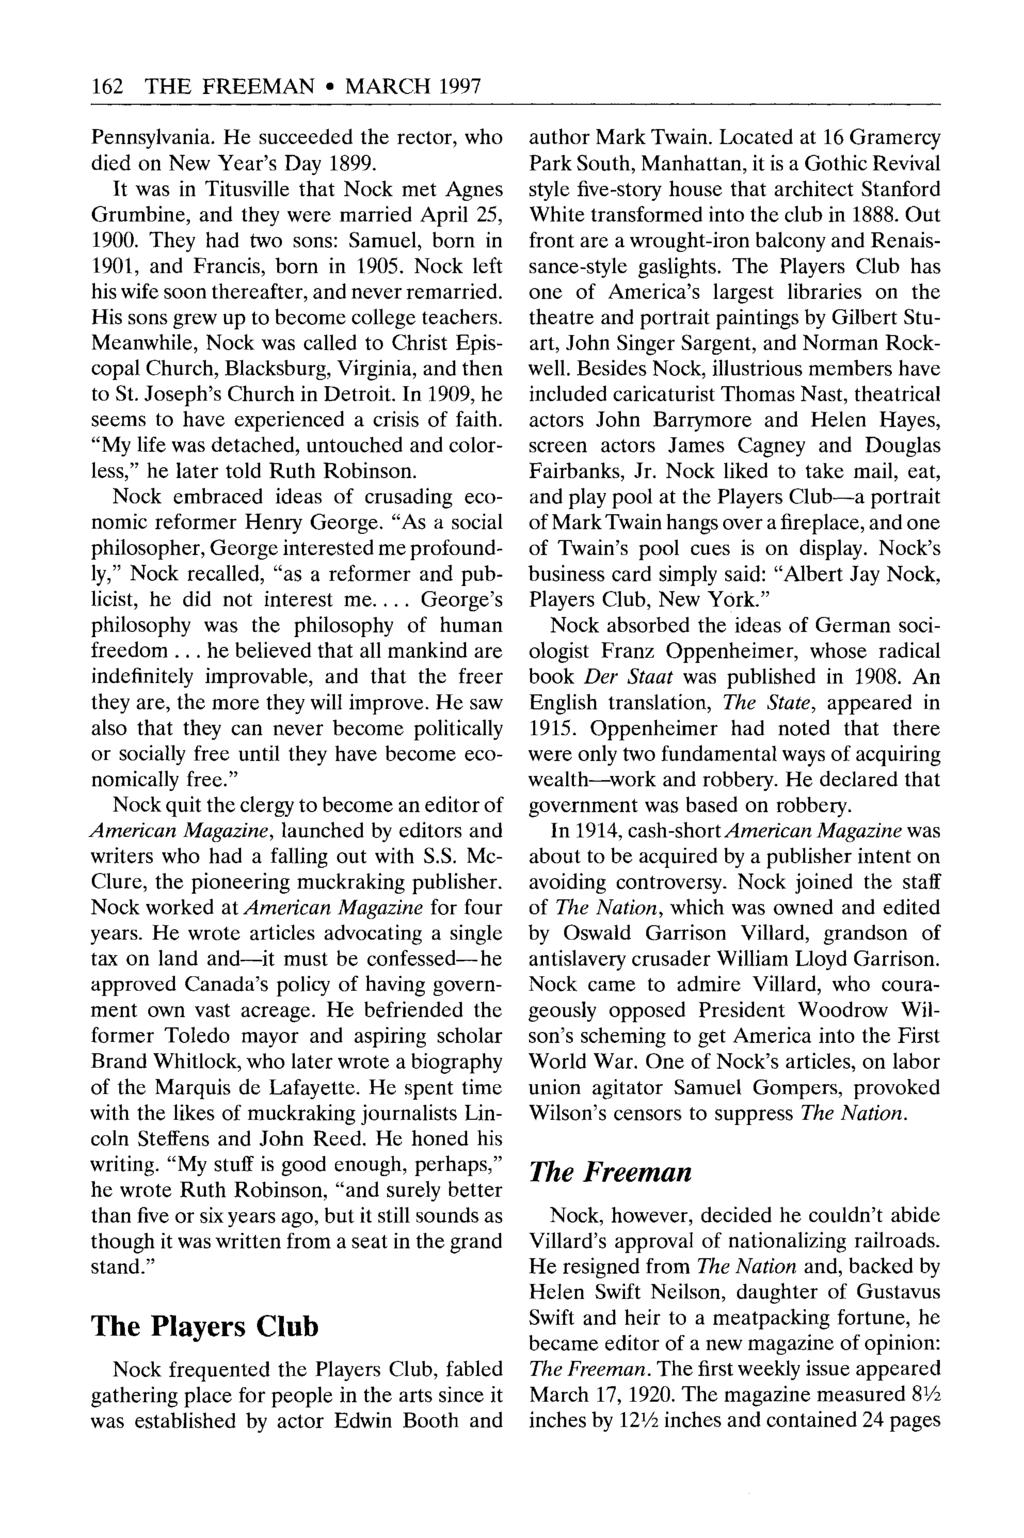 162 THE FREEMAN MARCH 1997 Pennsylvania. He succeeded the rector, who died on New Year's Day 1899. It was in Titusville that Nock met Agnes Grumbine, and they were married April 25, 1900.